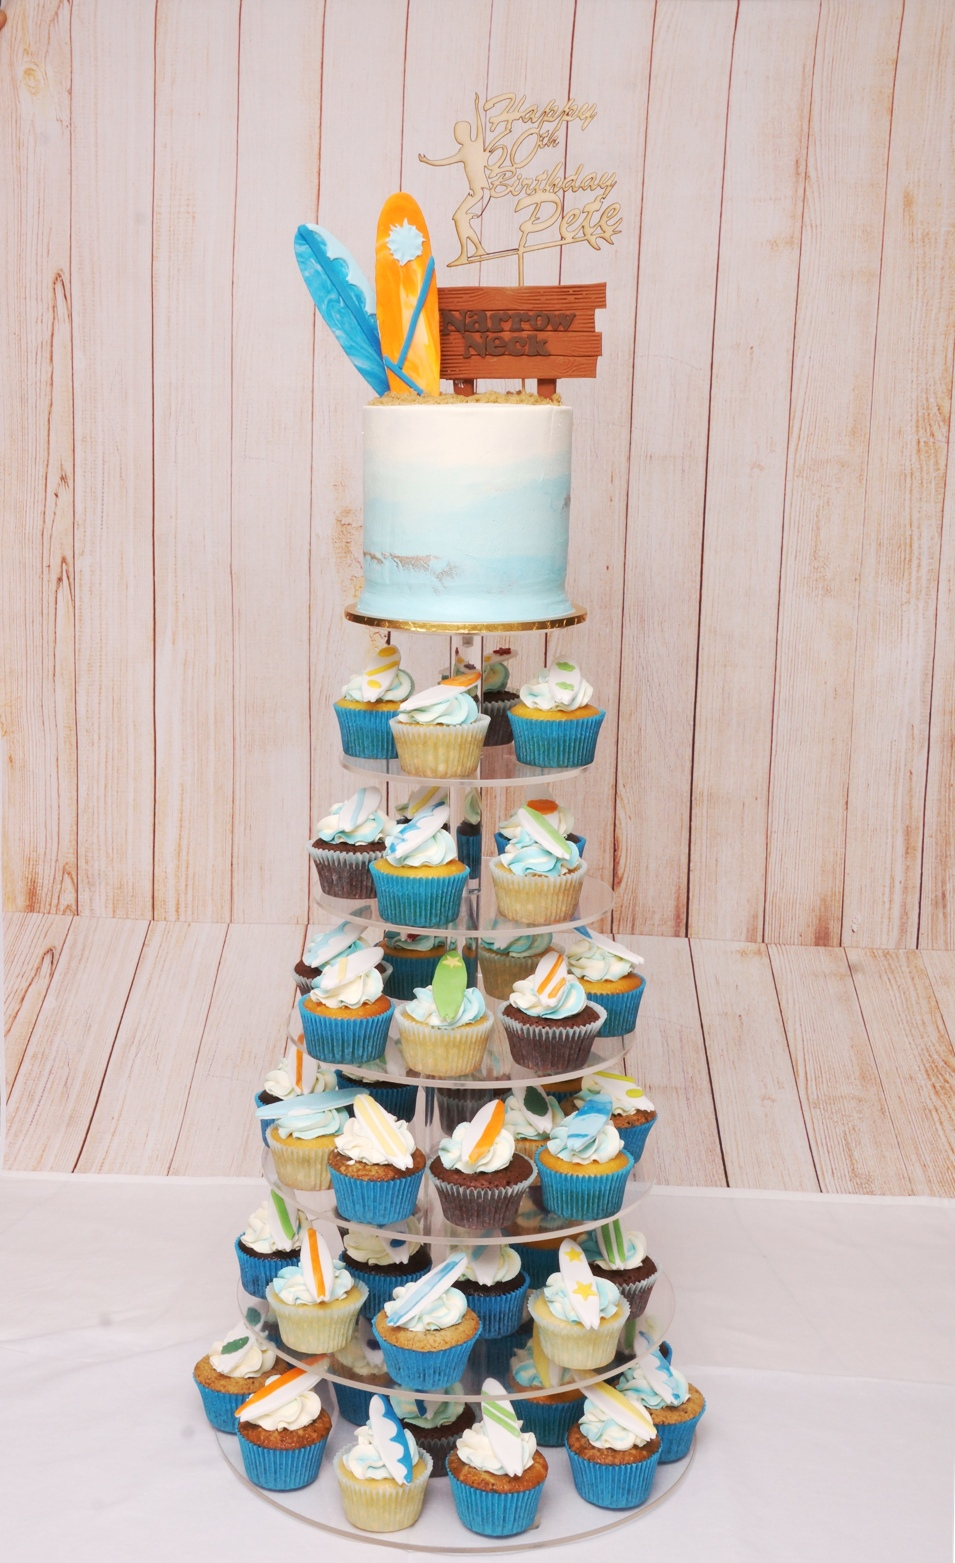 Surf Board Cake and Cupcakes 2